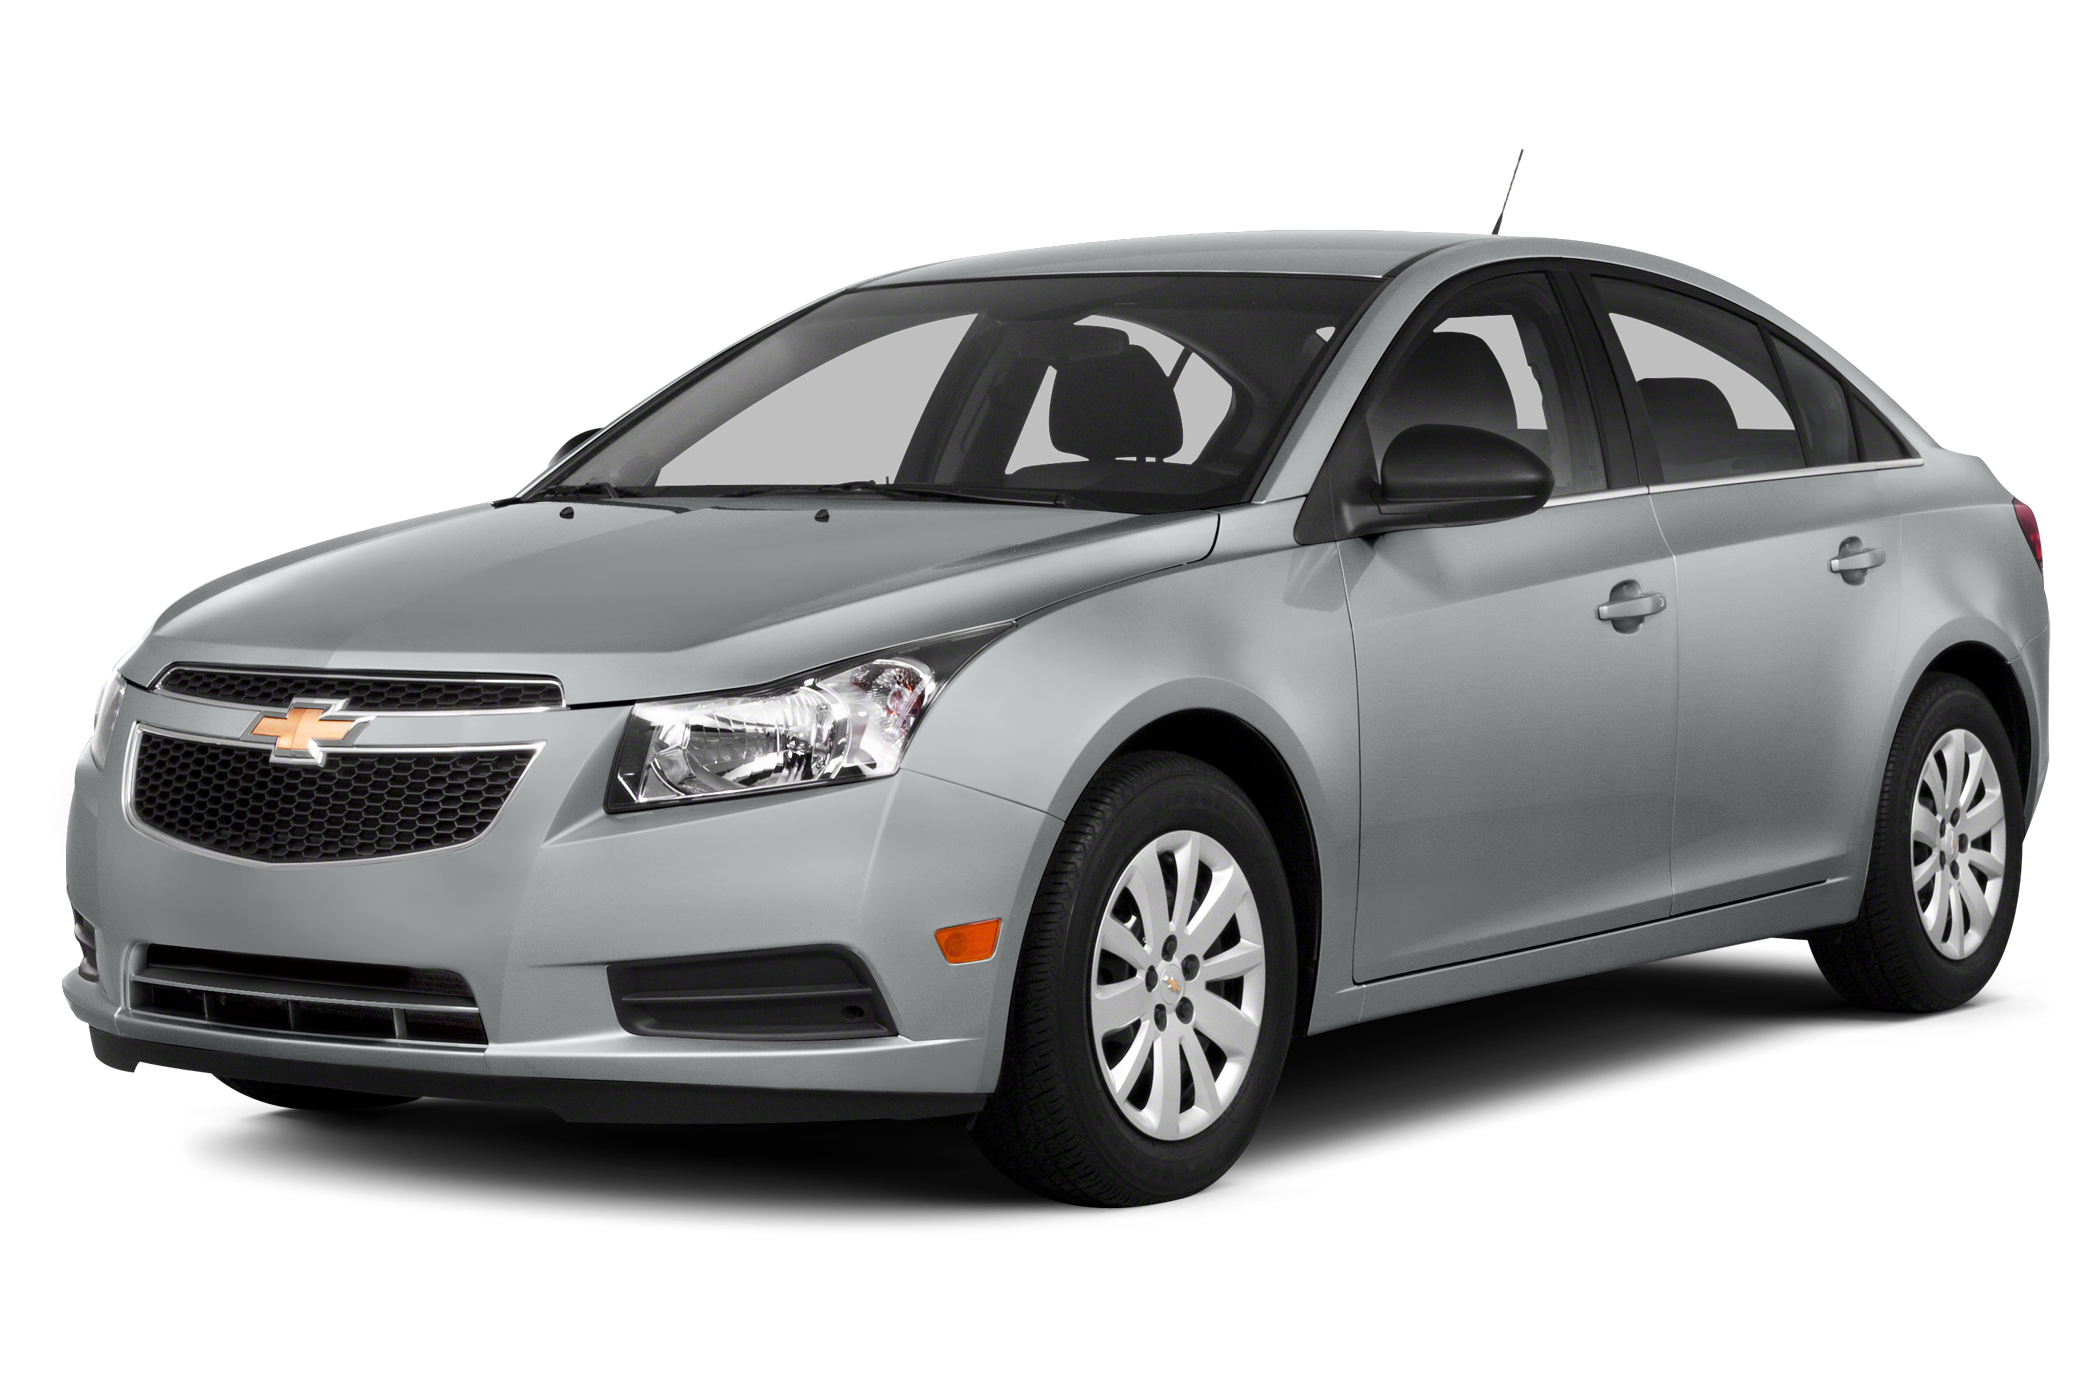 2014 Chevrolet Cruze Diesel  Chevy Cruises Onto Vw S Turf